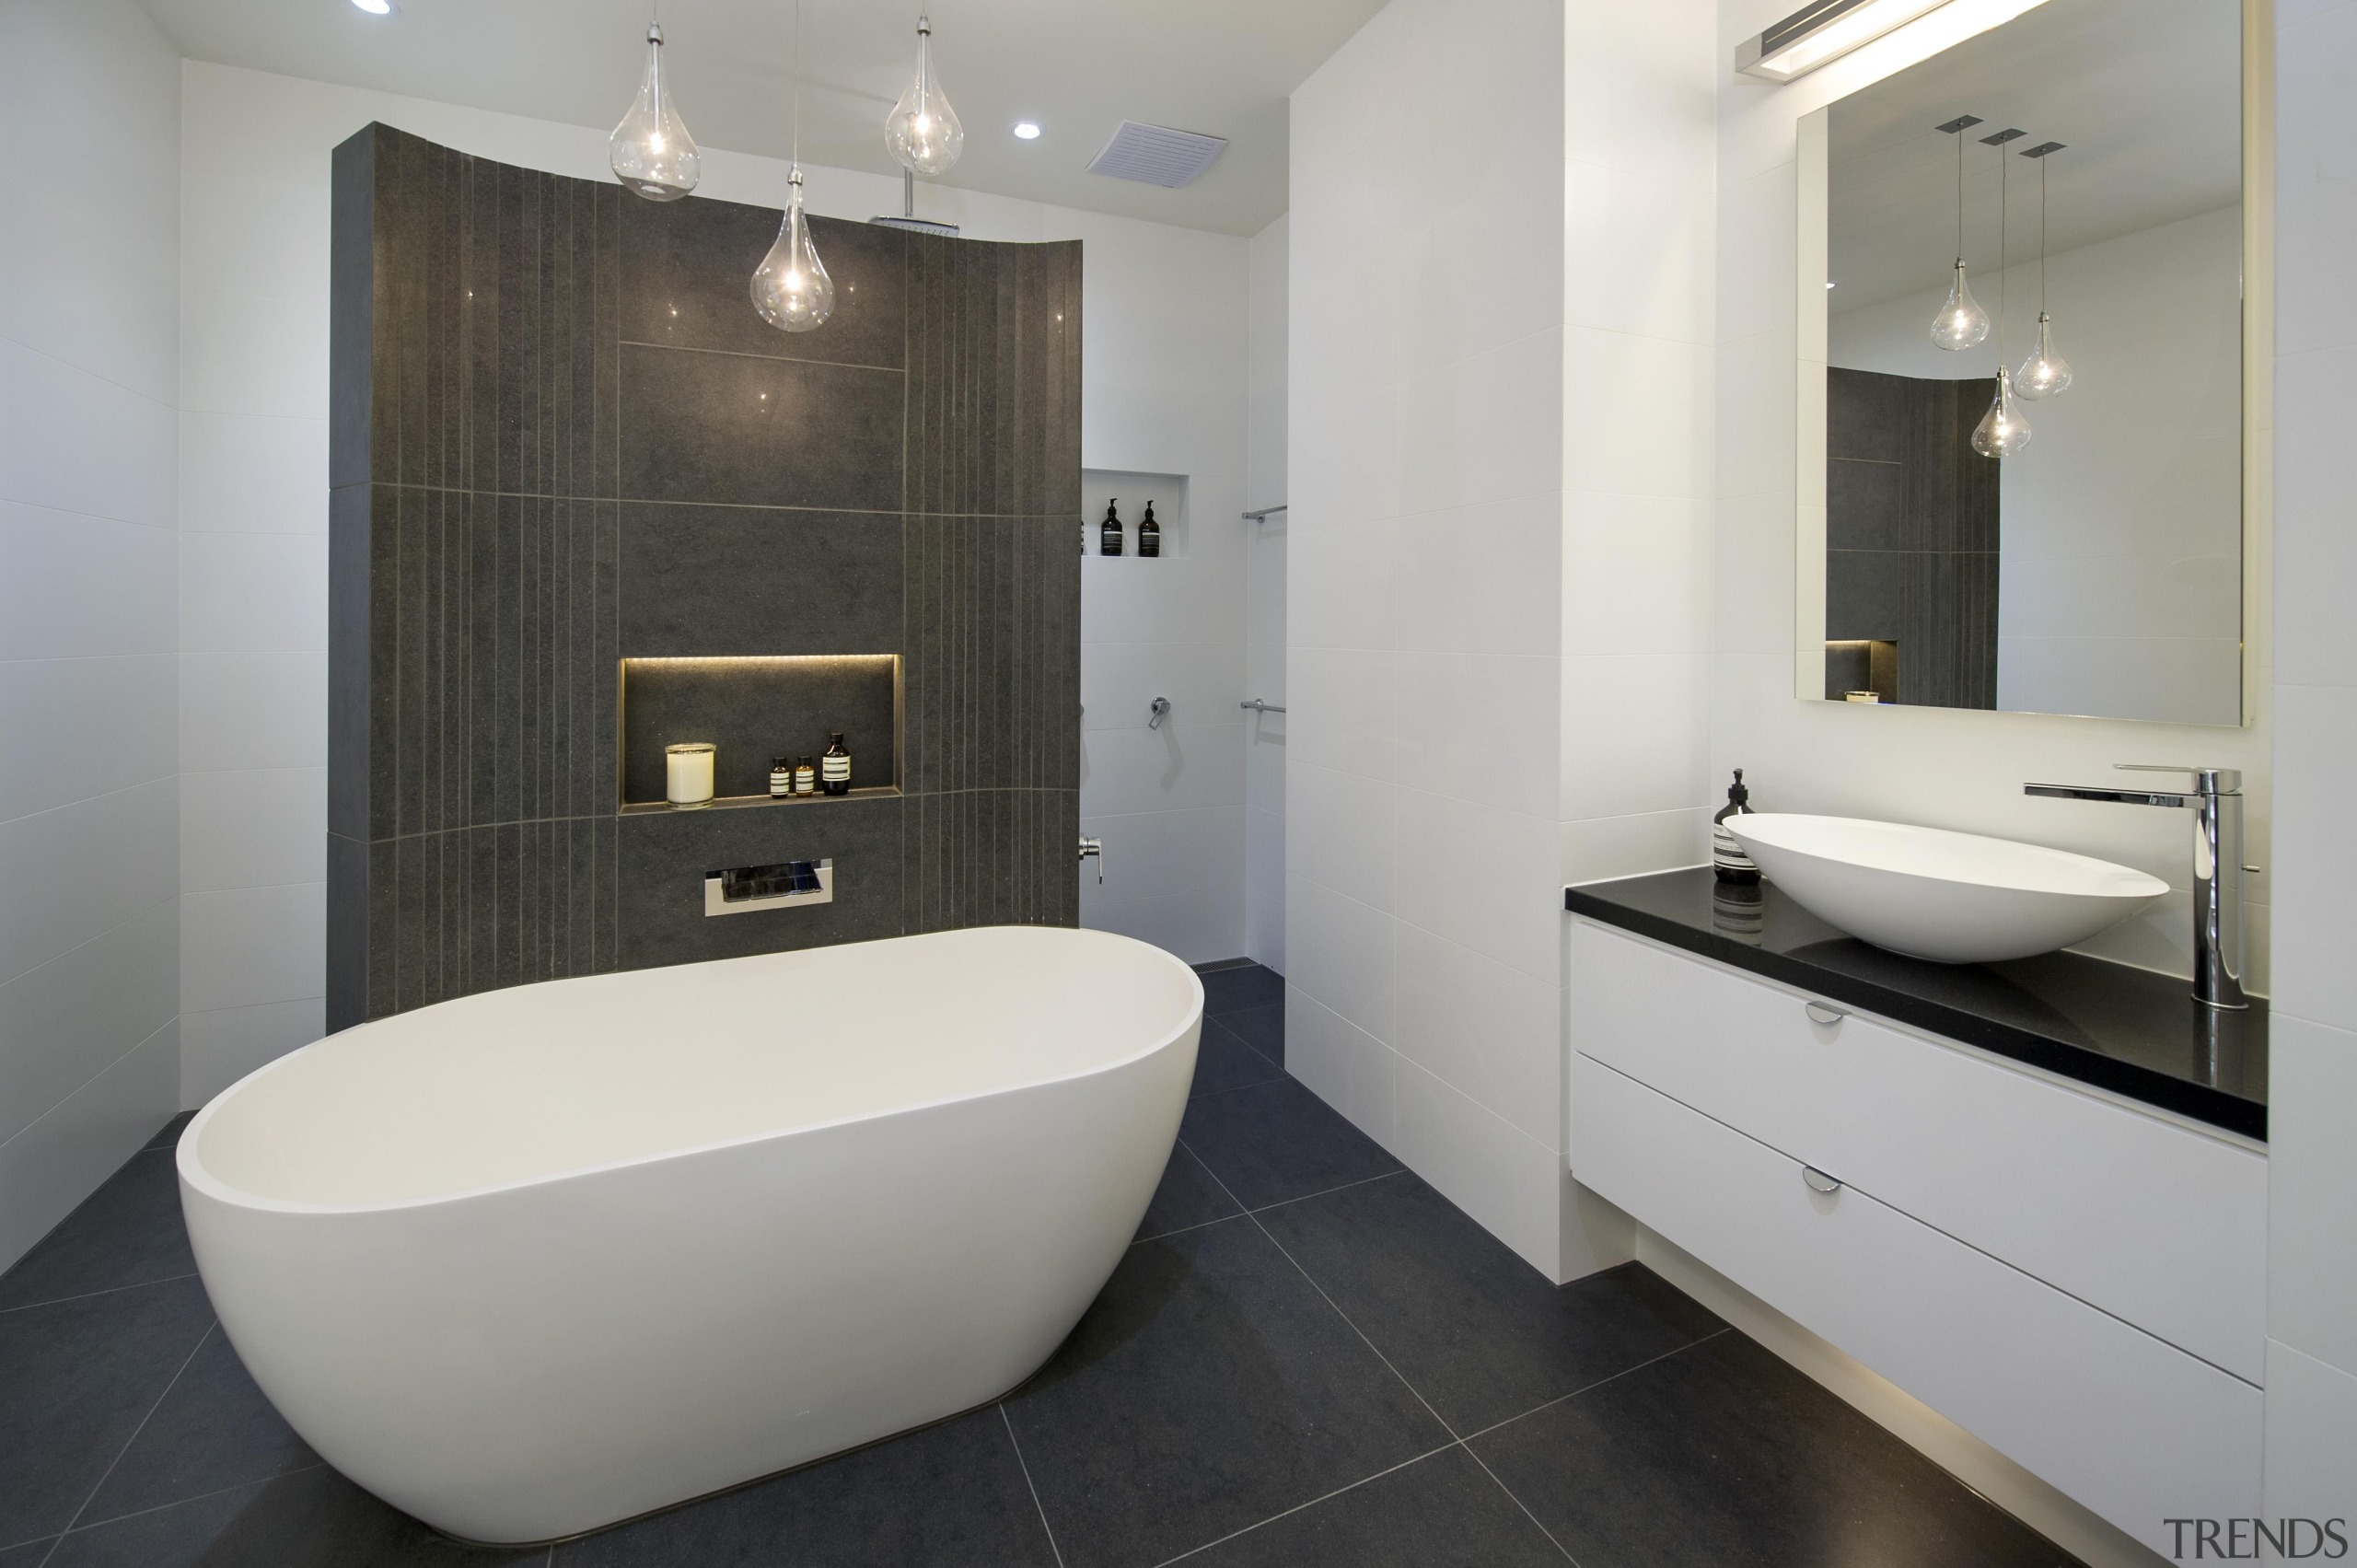 Bubbles Bathrooms - Winner of Housing Industry Association architecture, bathroom, bathroom accessory, floor, interior design, product design, property, real estate, room, tile, gray, black